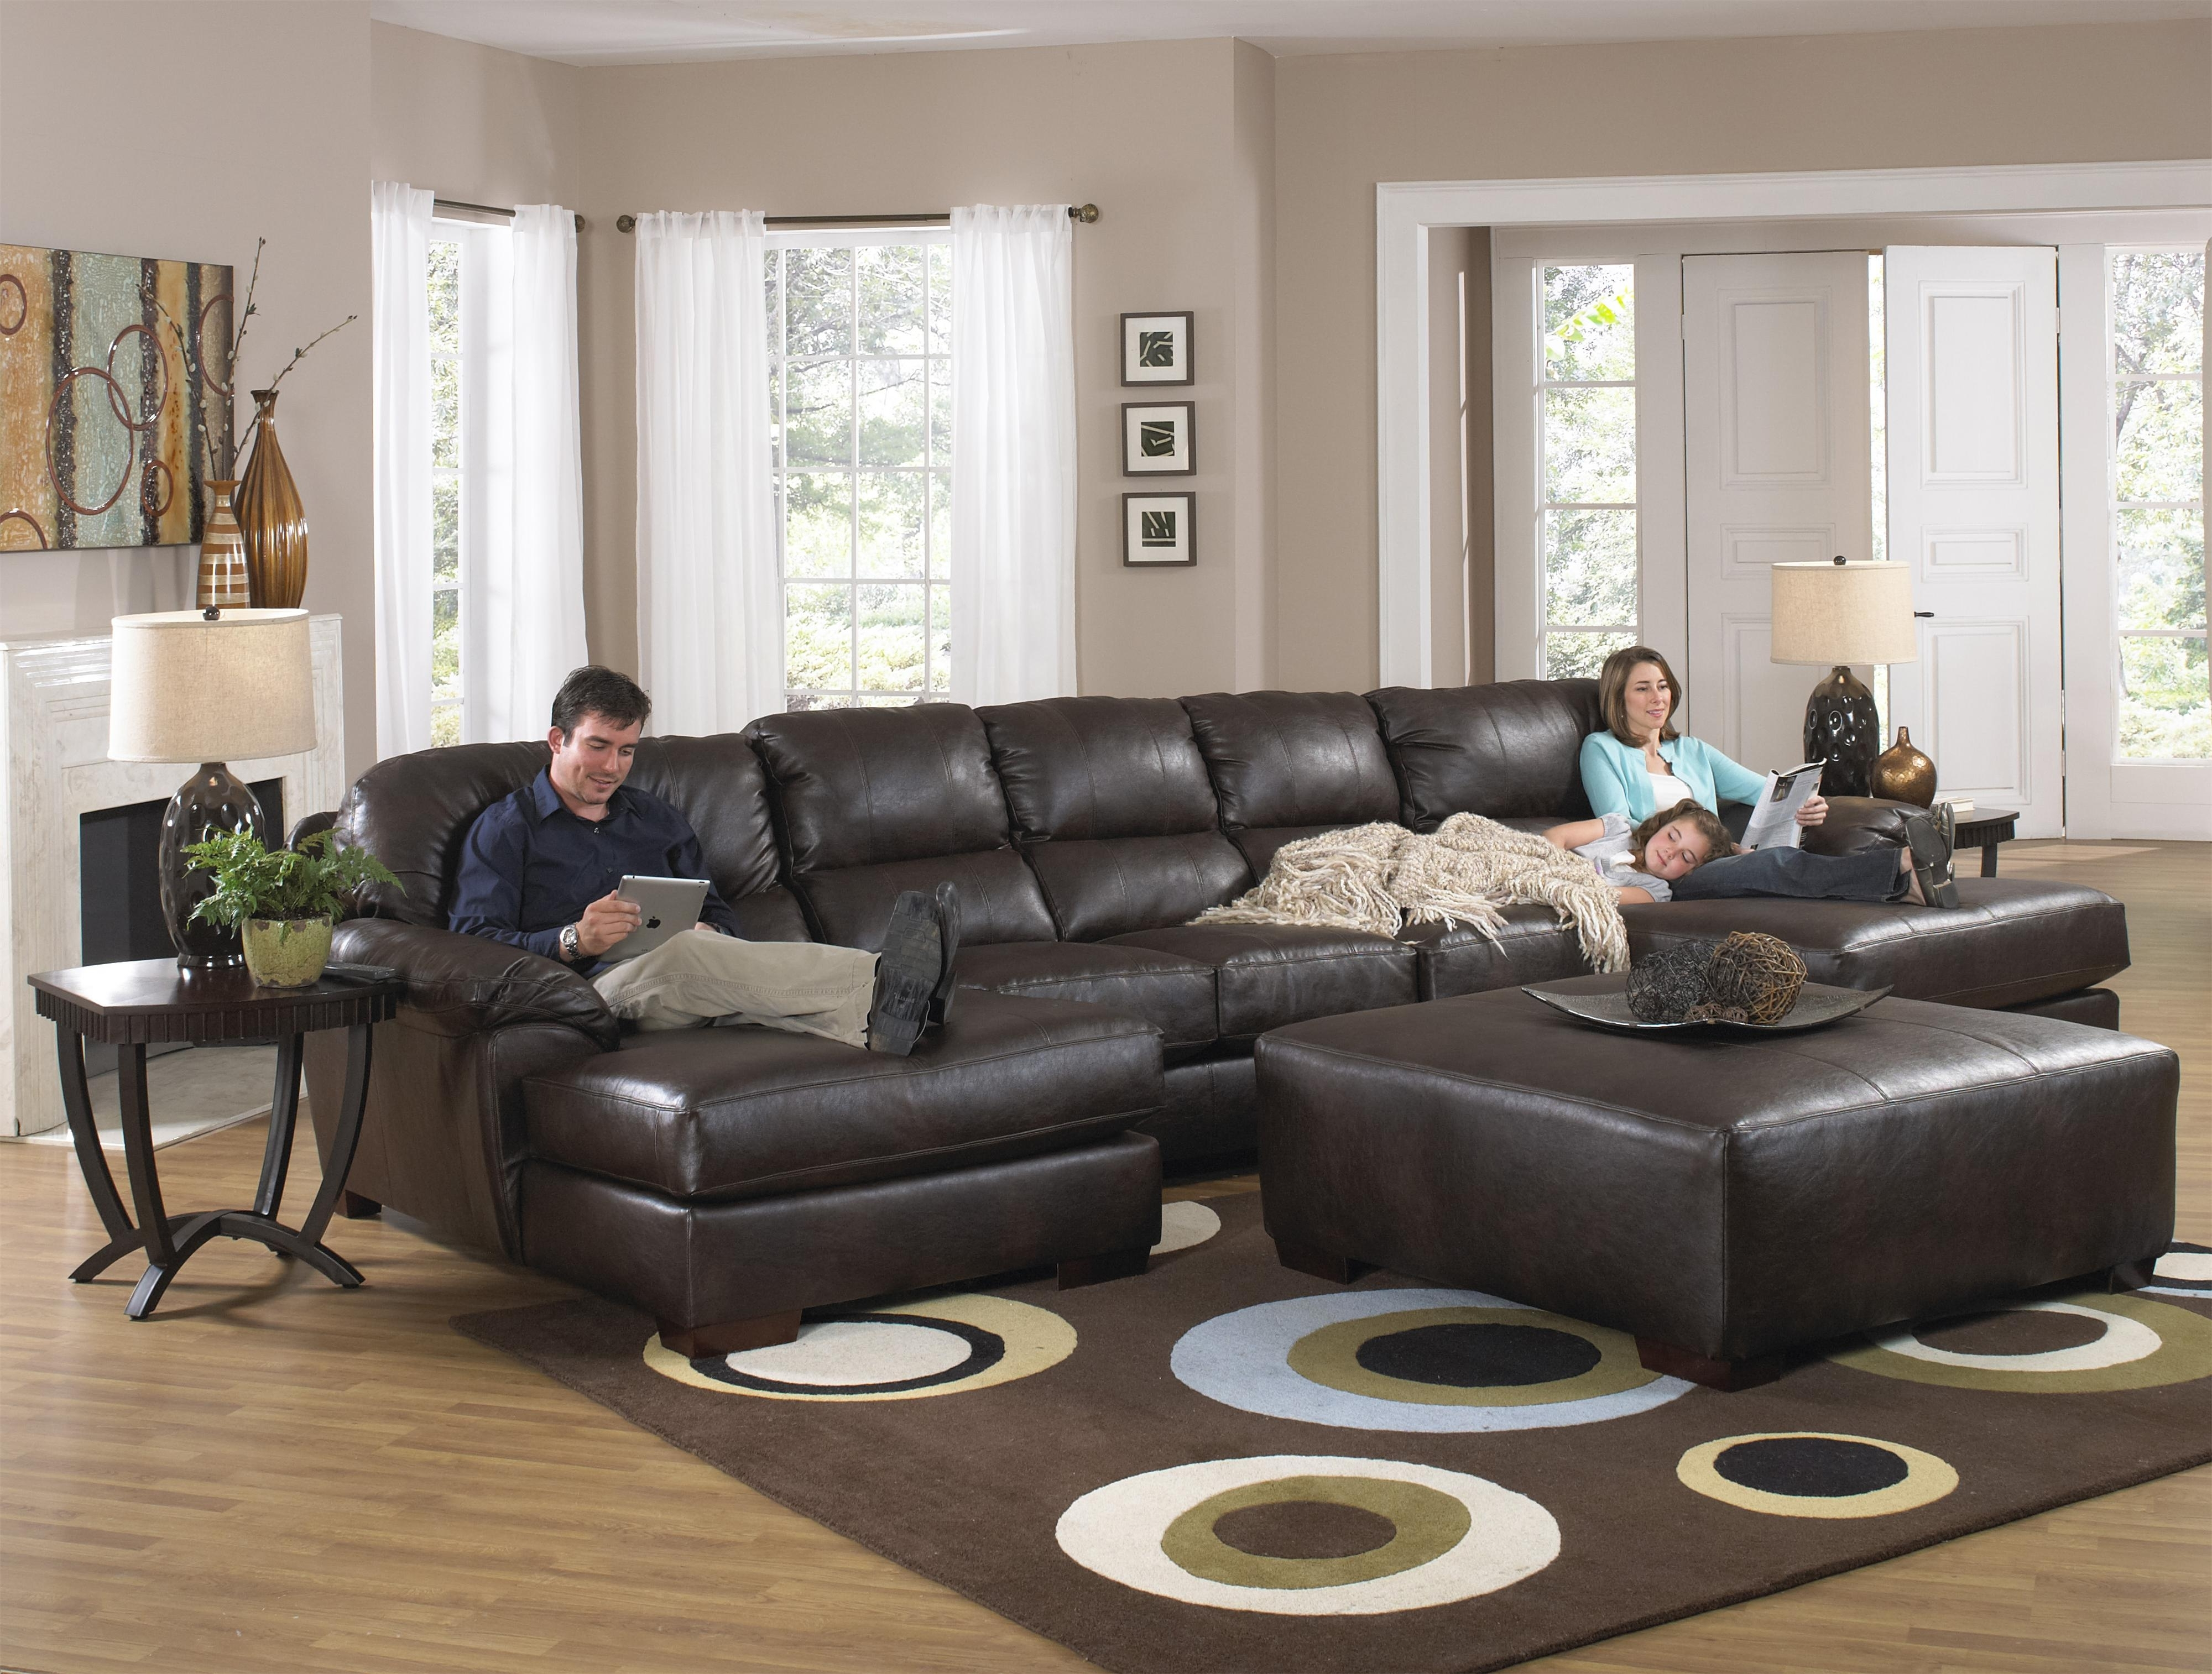 Favorite Leather Sectional Sofas With Chaise With Extra Deep Sectional Sofa Extra Large Sectional Sofas With Chaise (View 6 of 15)